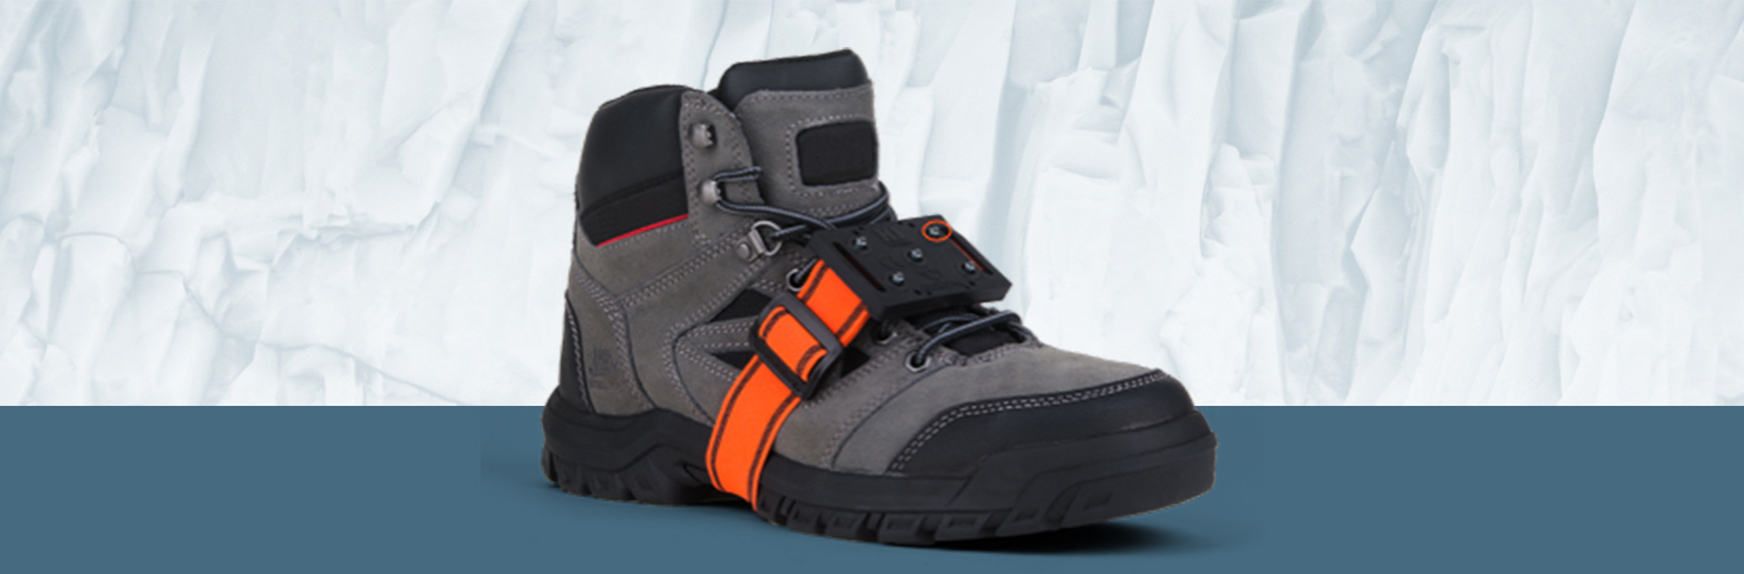 Rugged boot with ice cleats